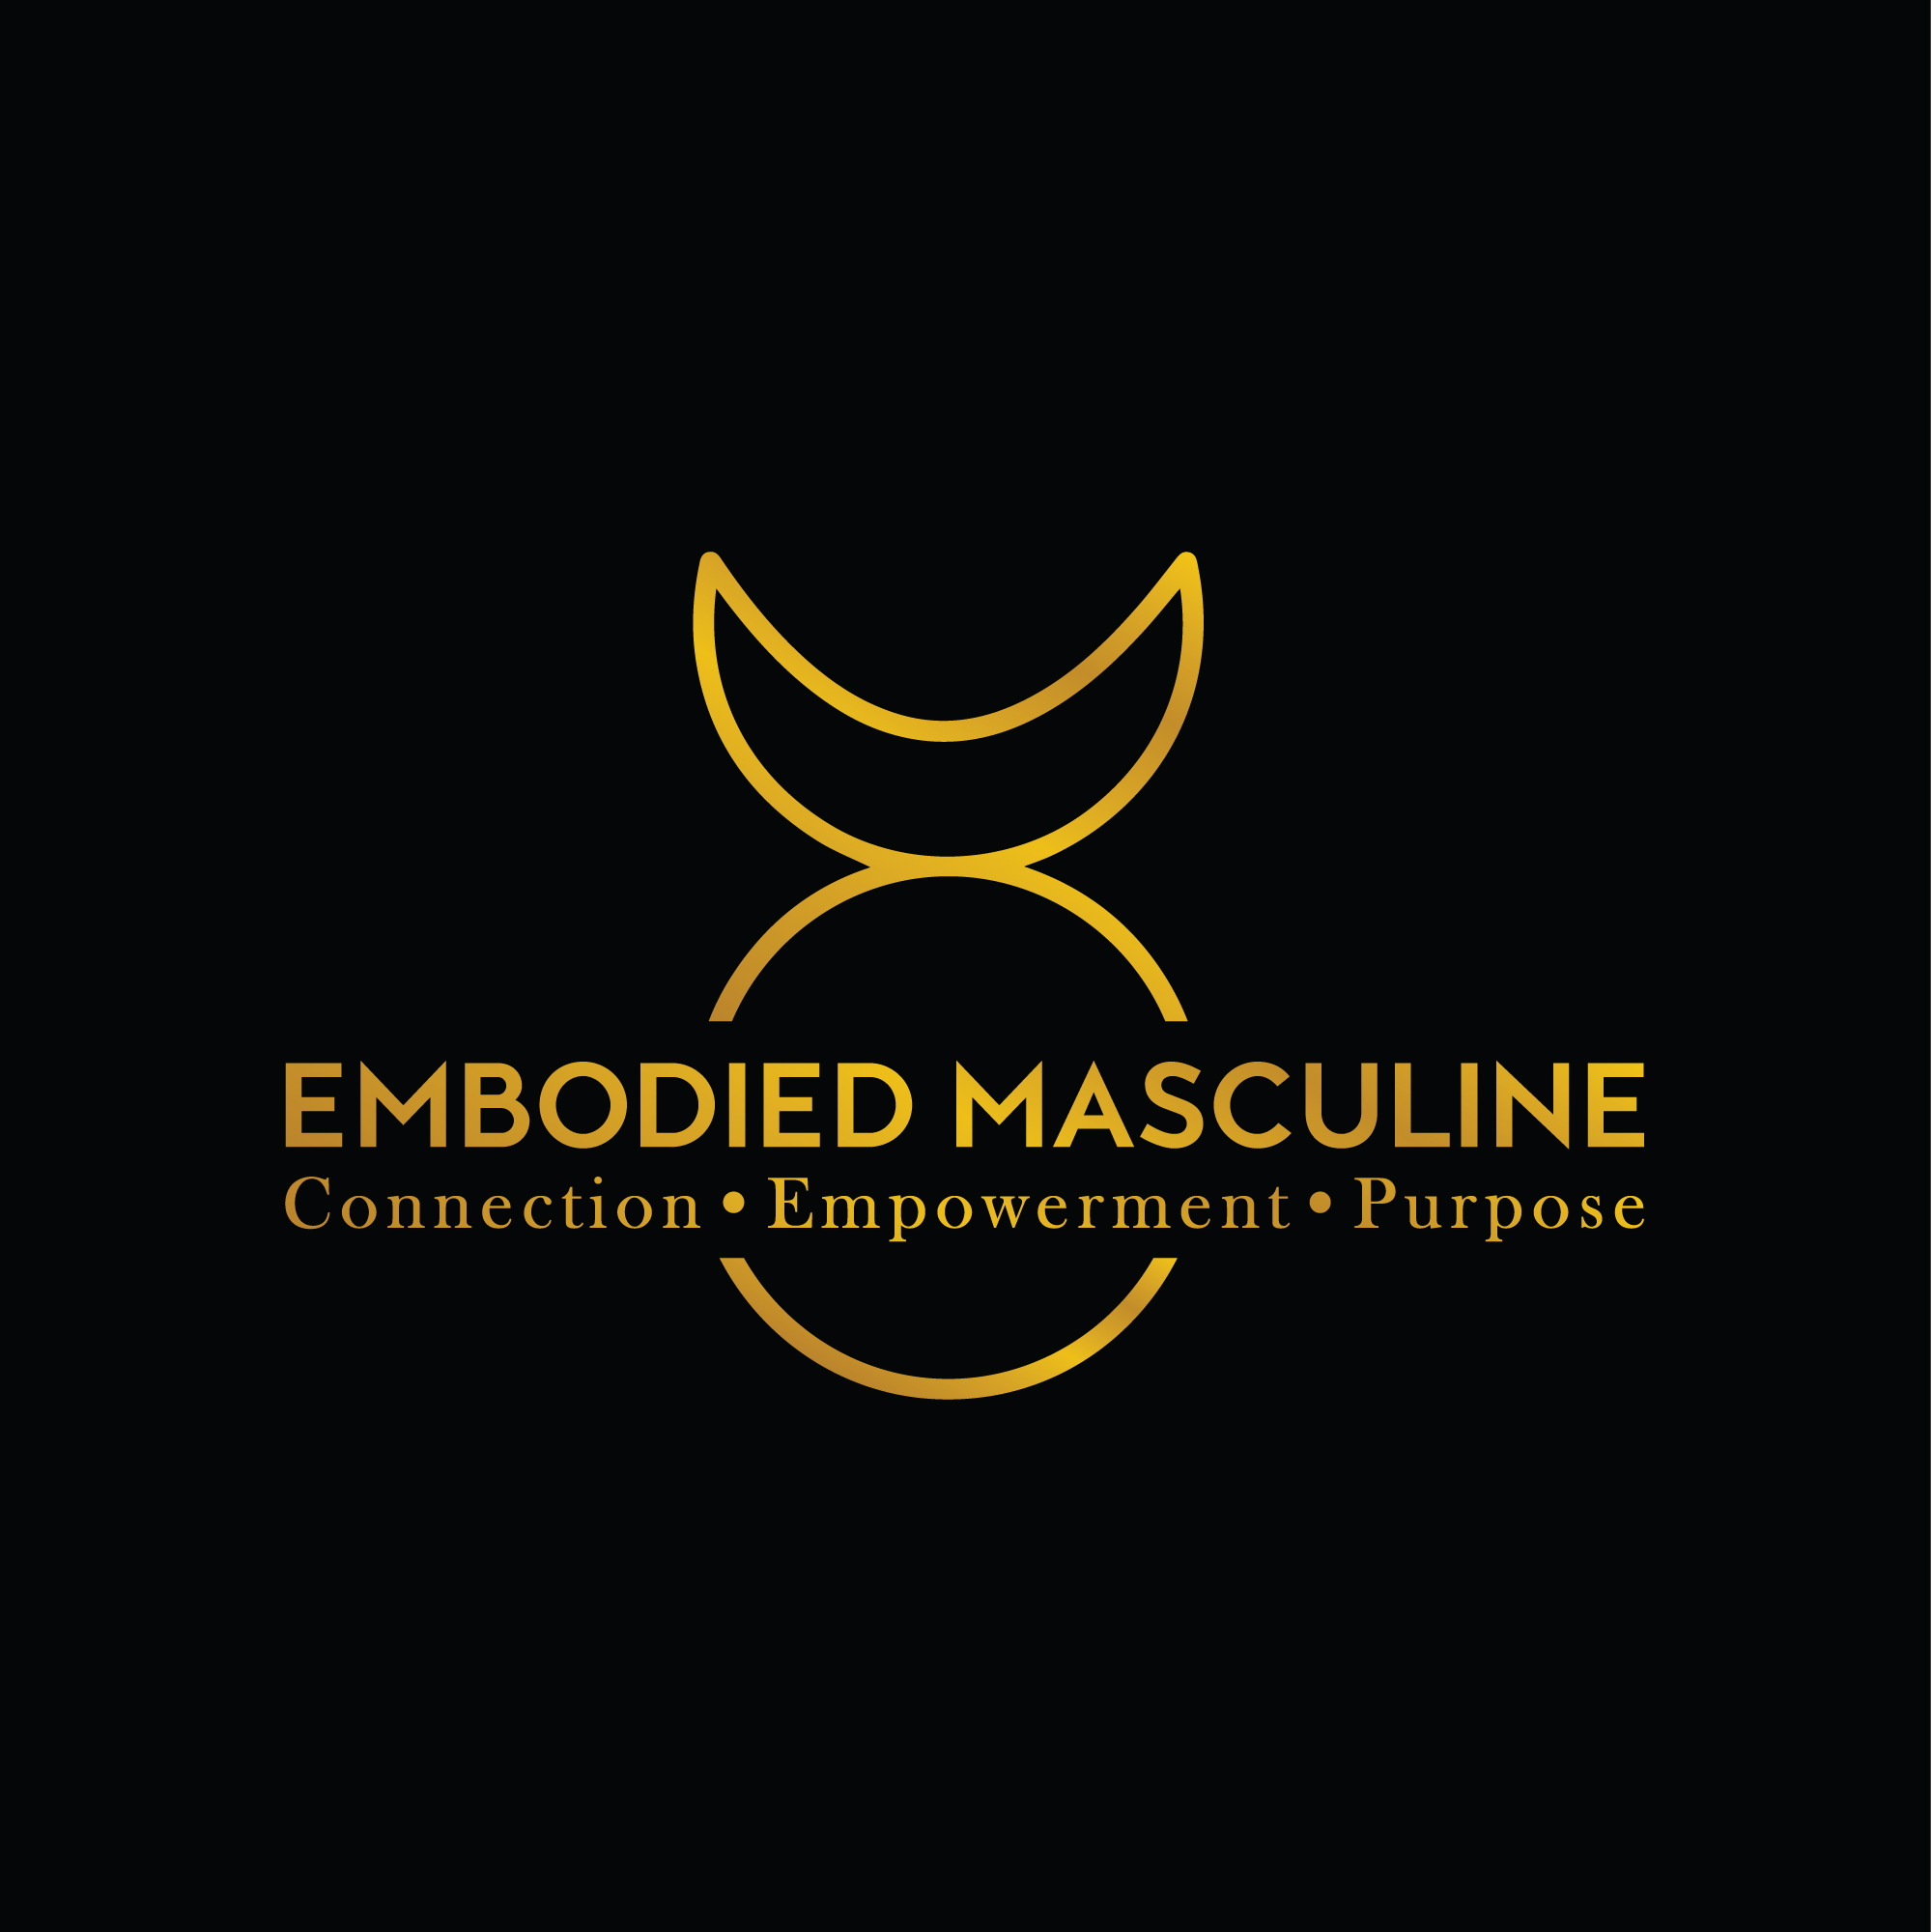 Embodied Masculine Logo (TM) Protected